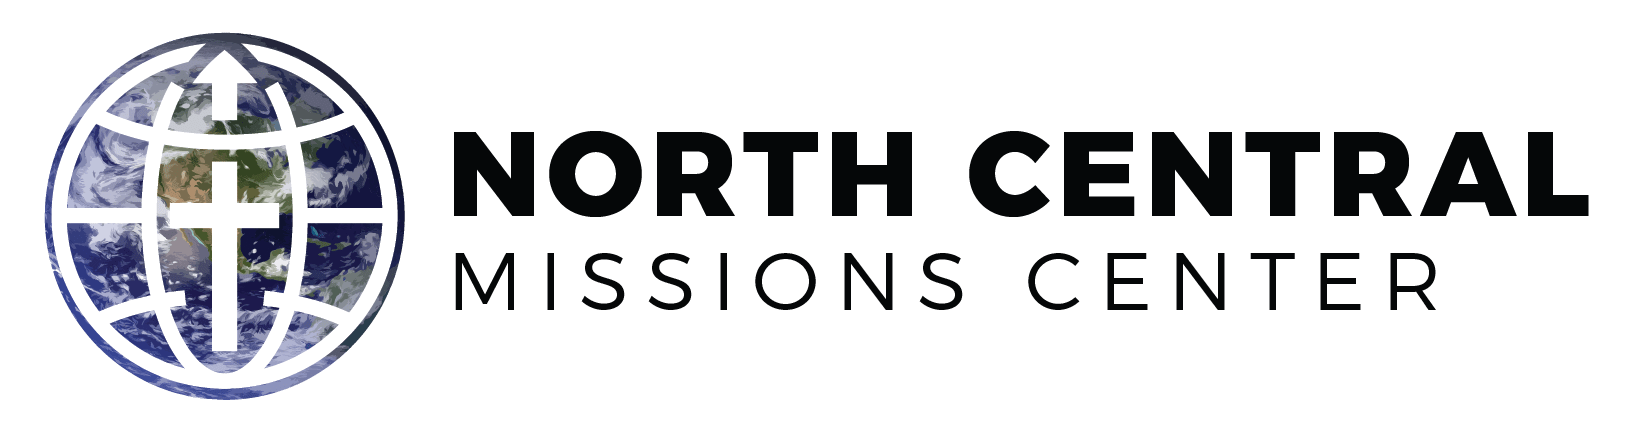 North Central Missions Center